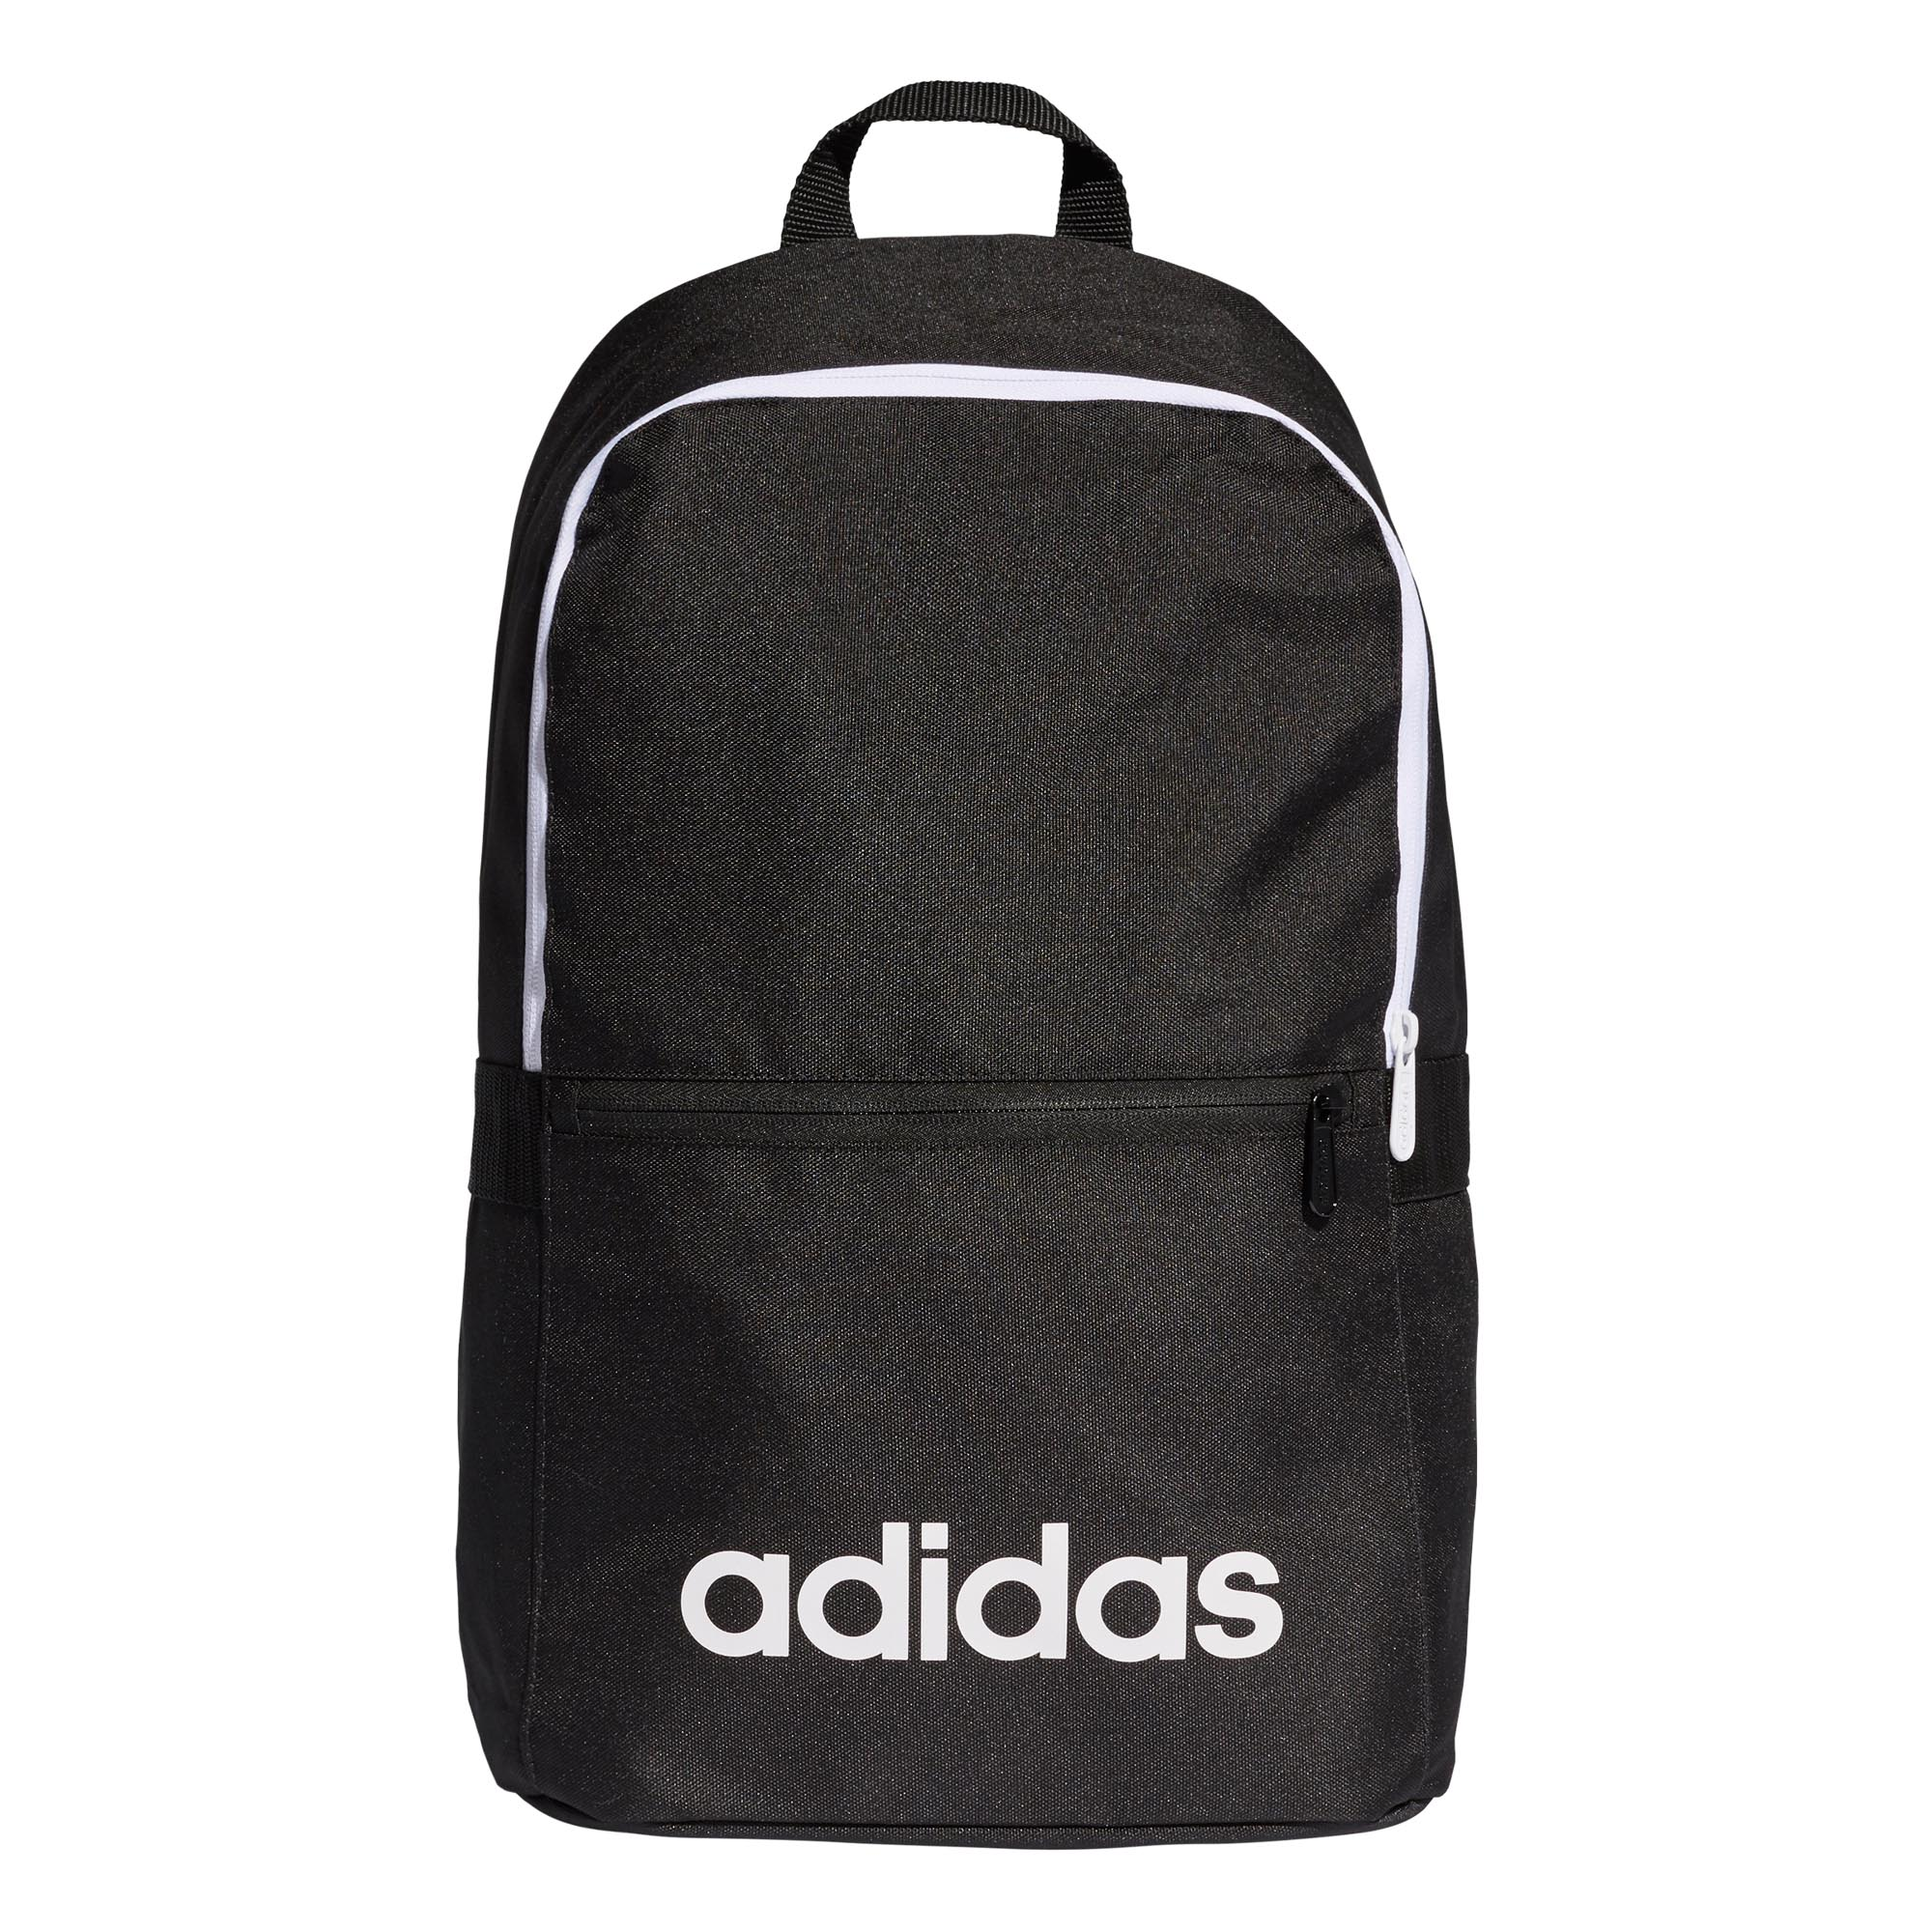 Details about adidas Linear Classic Backpack Rucksack School Sports Bag  Black White a84600d464144